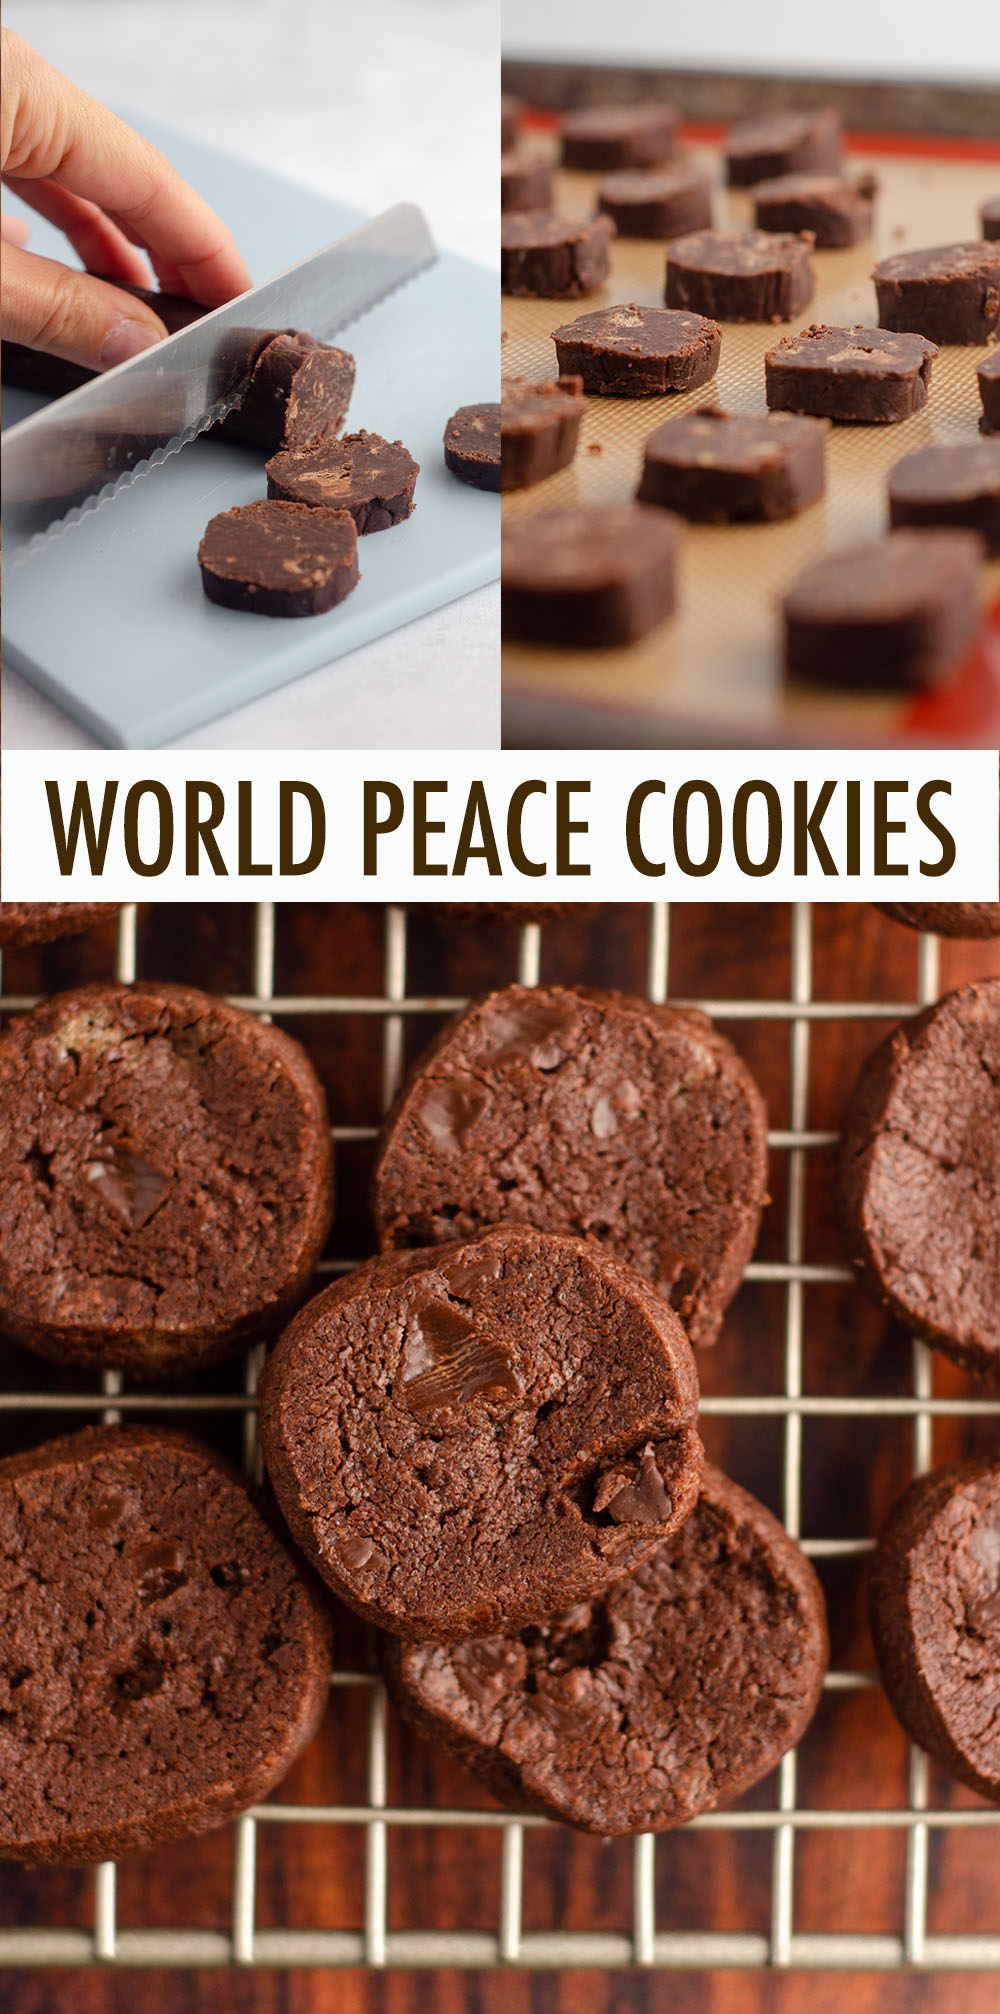 A buttery, salted chocolate shortbread cookie, simplified by the slice and bake method.